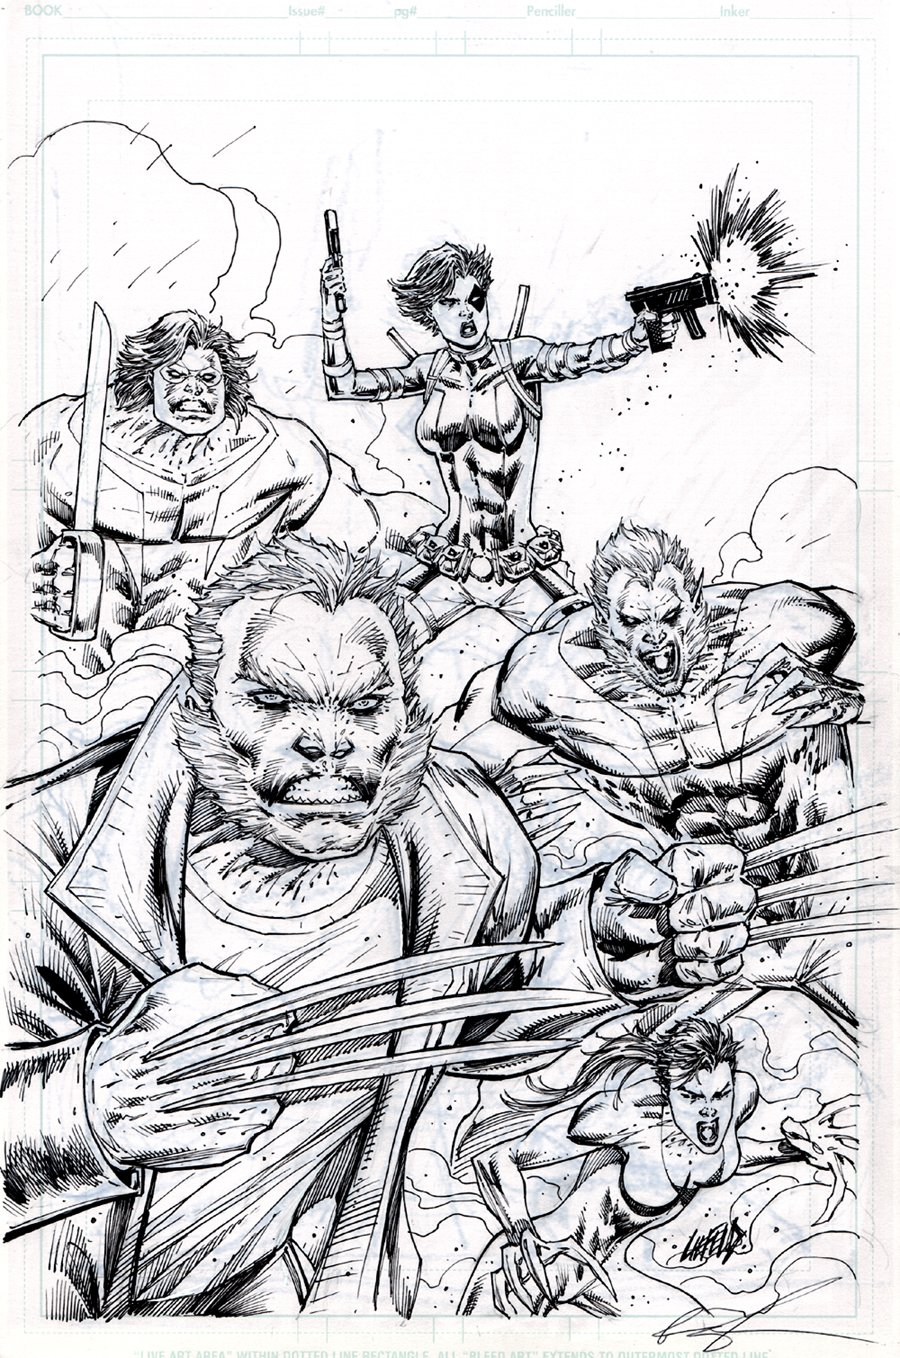 Weapon X #1 Cover (2017)